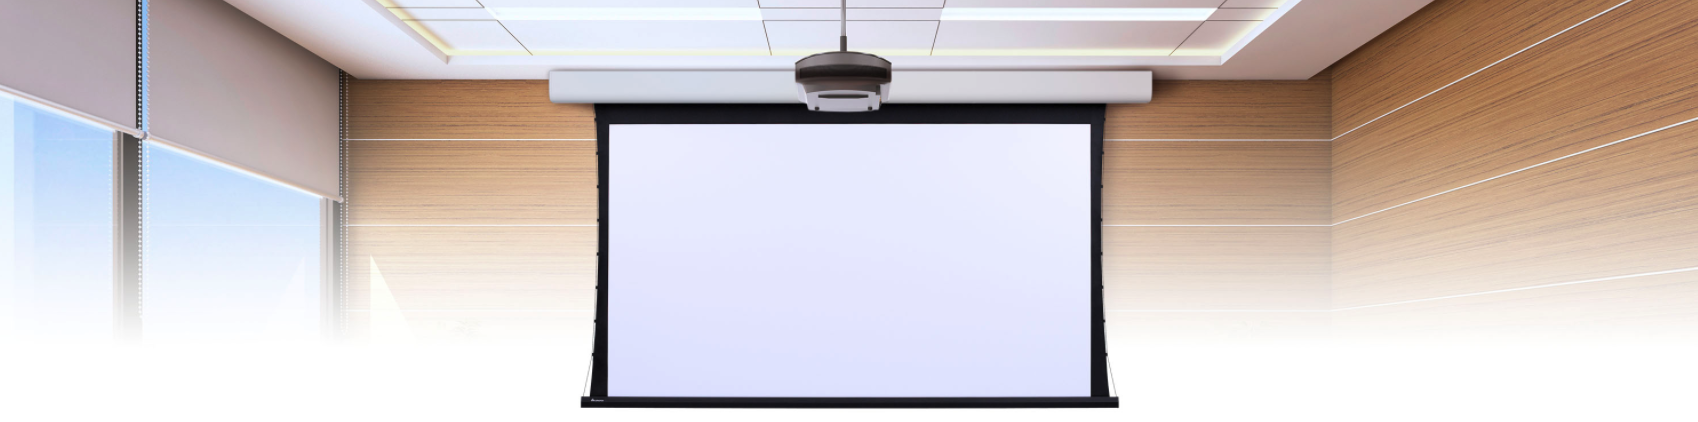 Smart Projection Screen Display